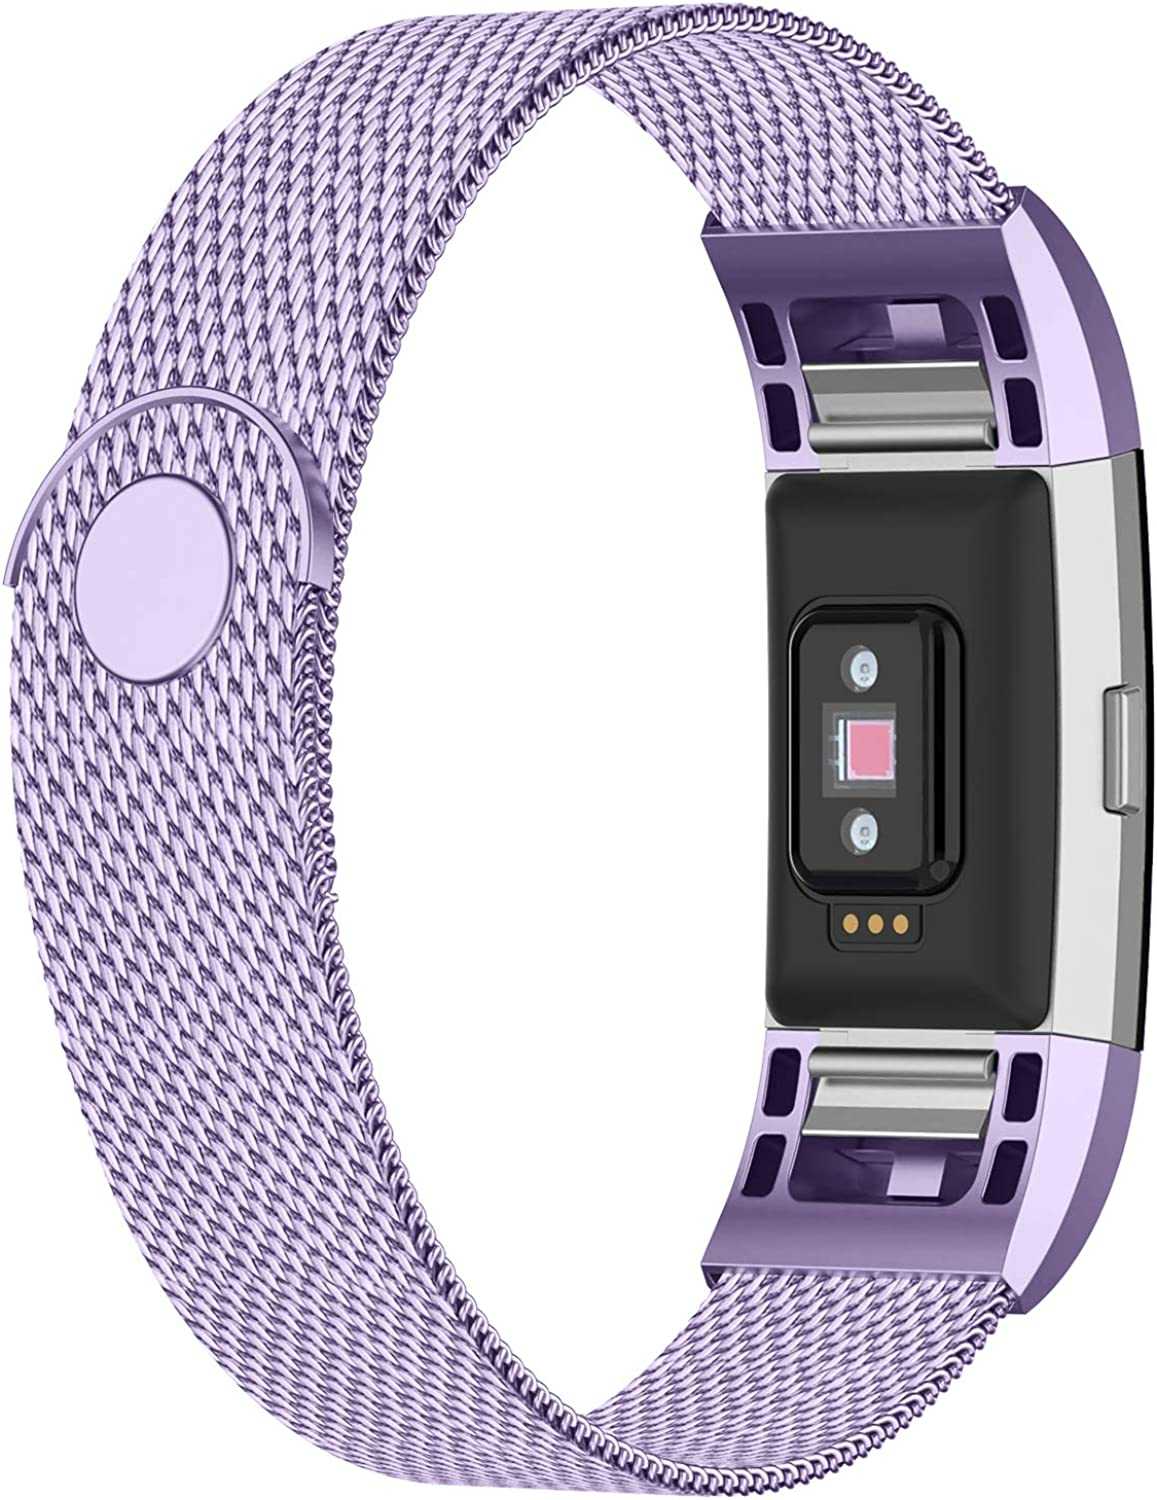 iGK Replacement Bands Compatible for Fitbit Charge 2, Stainless Steel Metal Bracelet with Unique Magnet Clasp